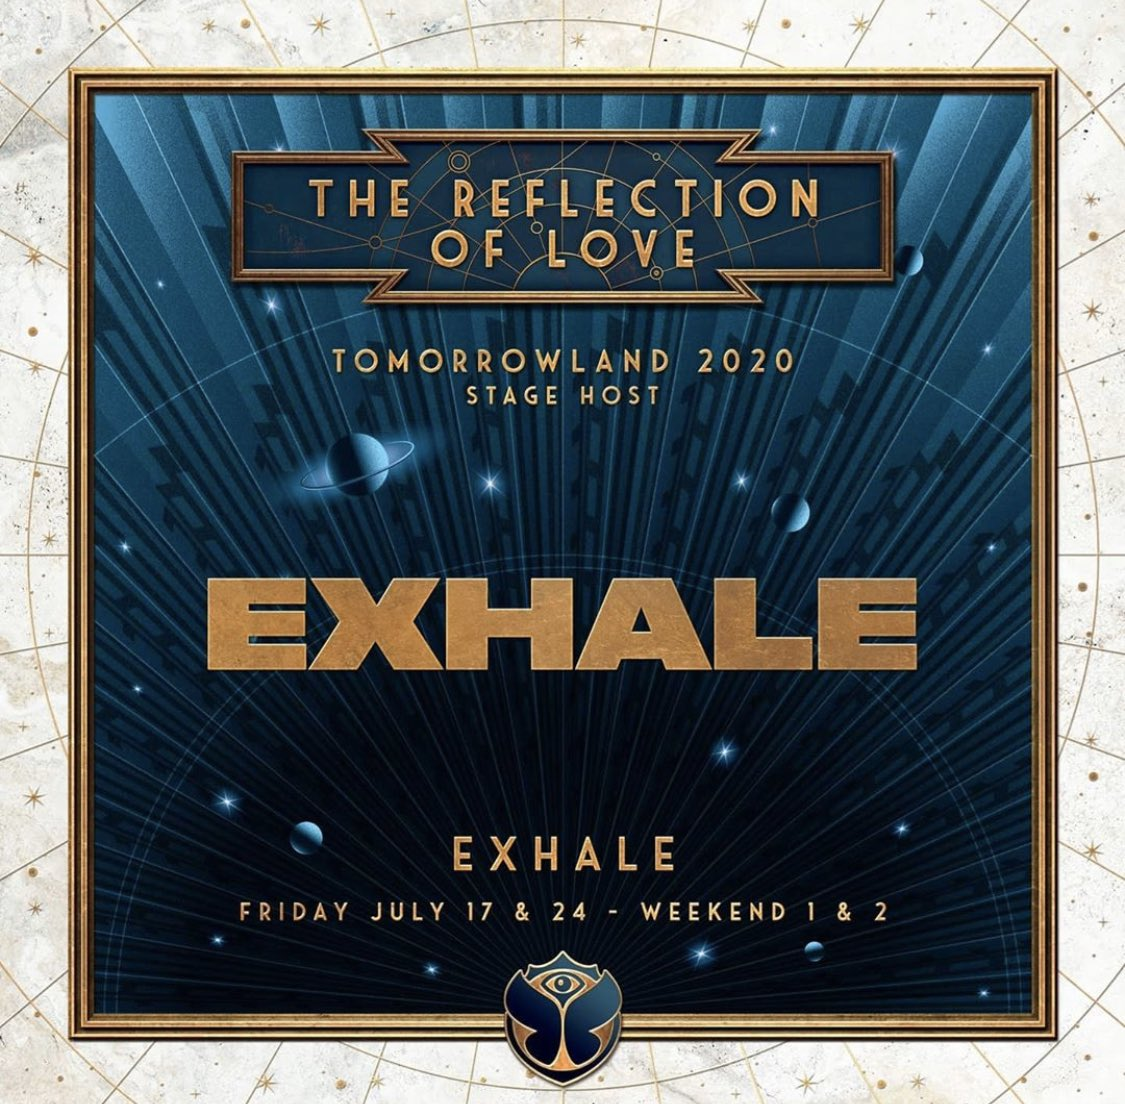 RT @AmelieLens: so excited to be hosting my own EXHALE stage both weekends at @tomorrowland 😱🤩 https://t.co/XkOiZUQiMP